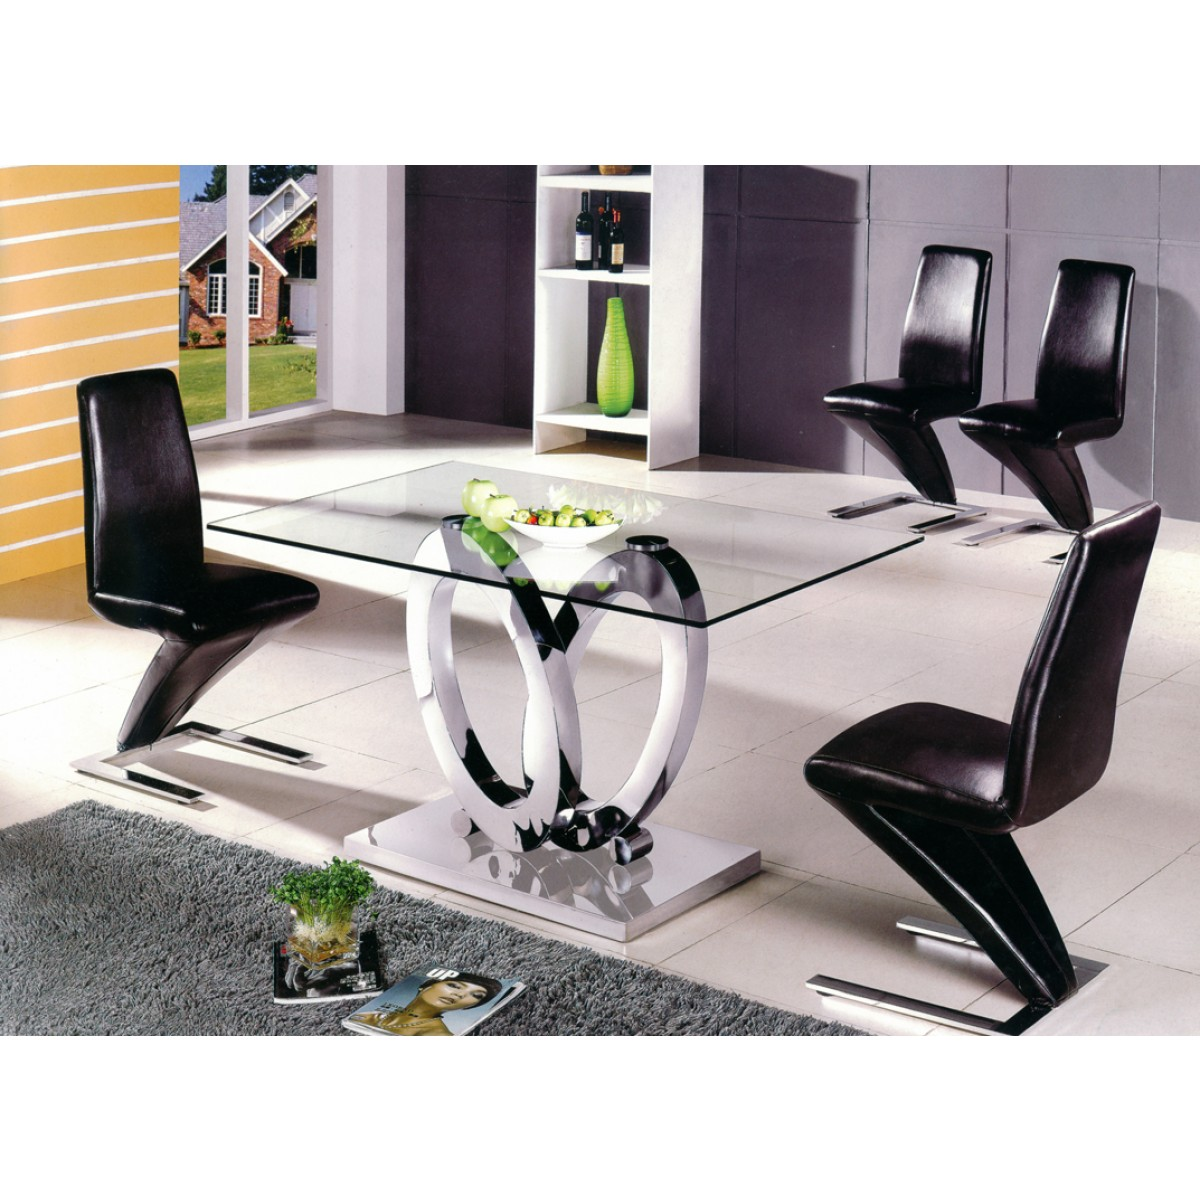 Table manger design ellipse taille au choix tables for Sejour design